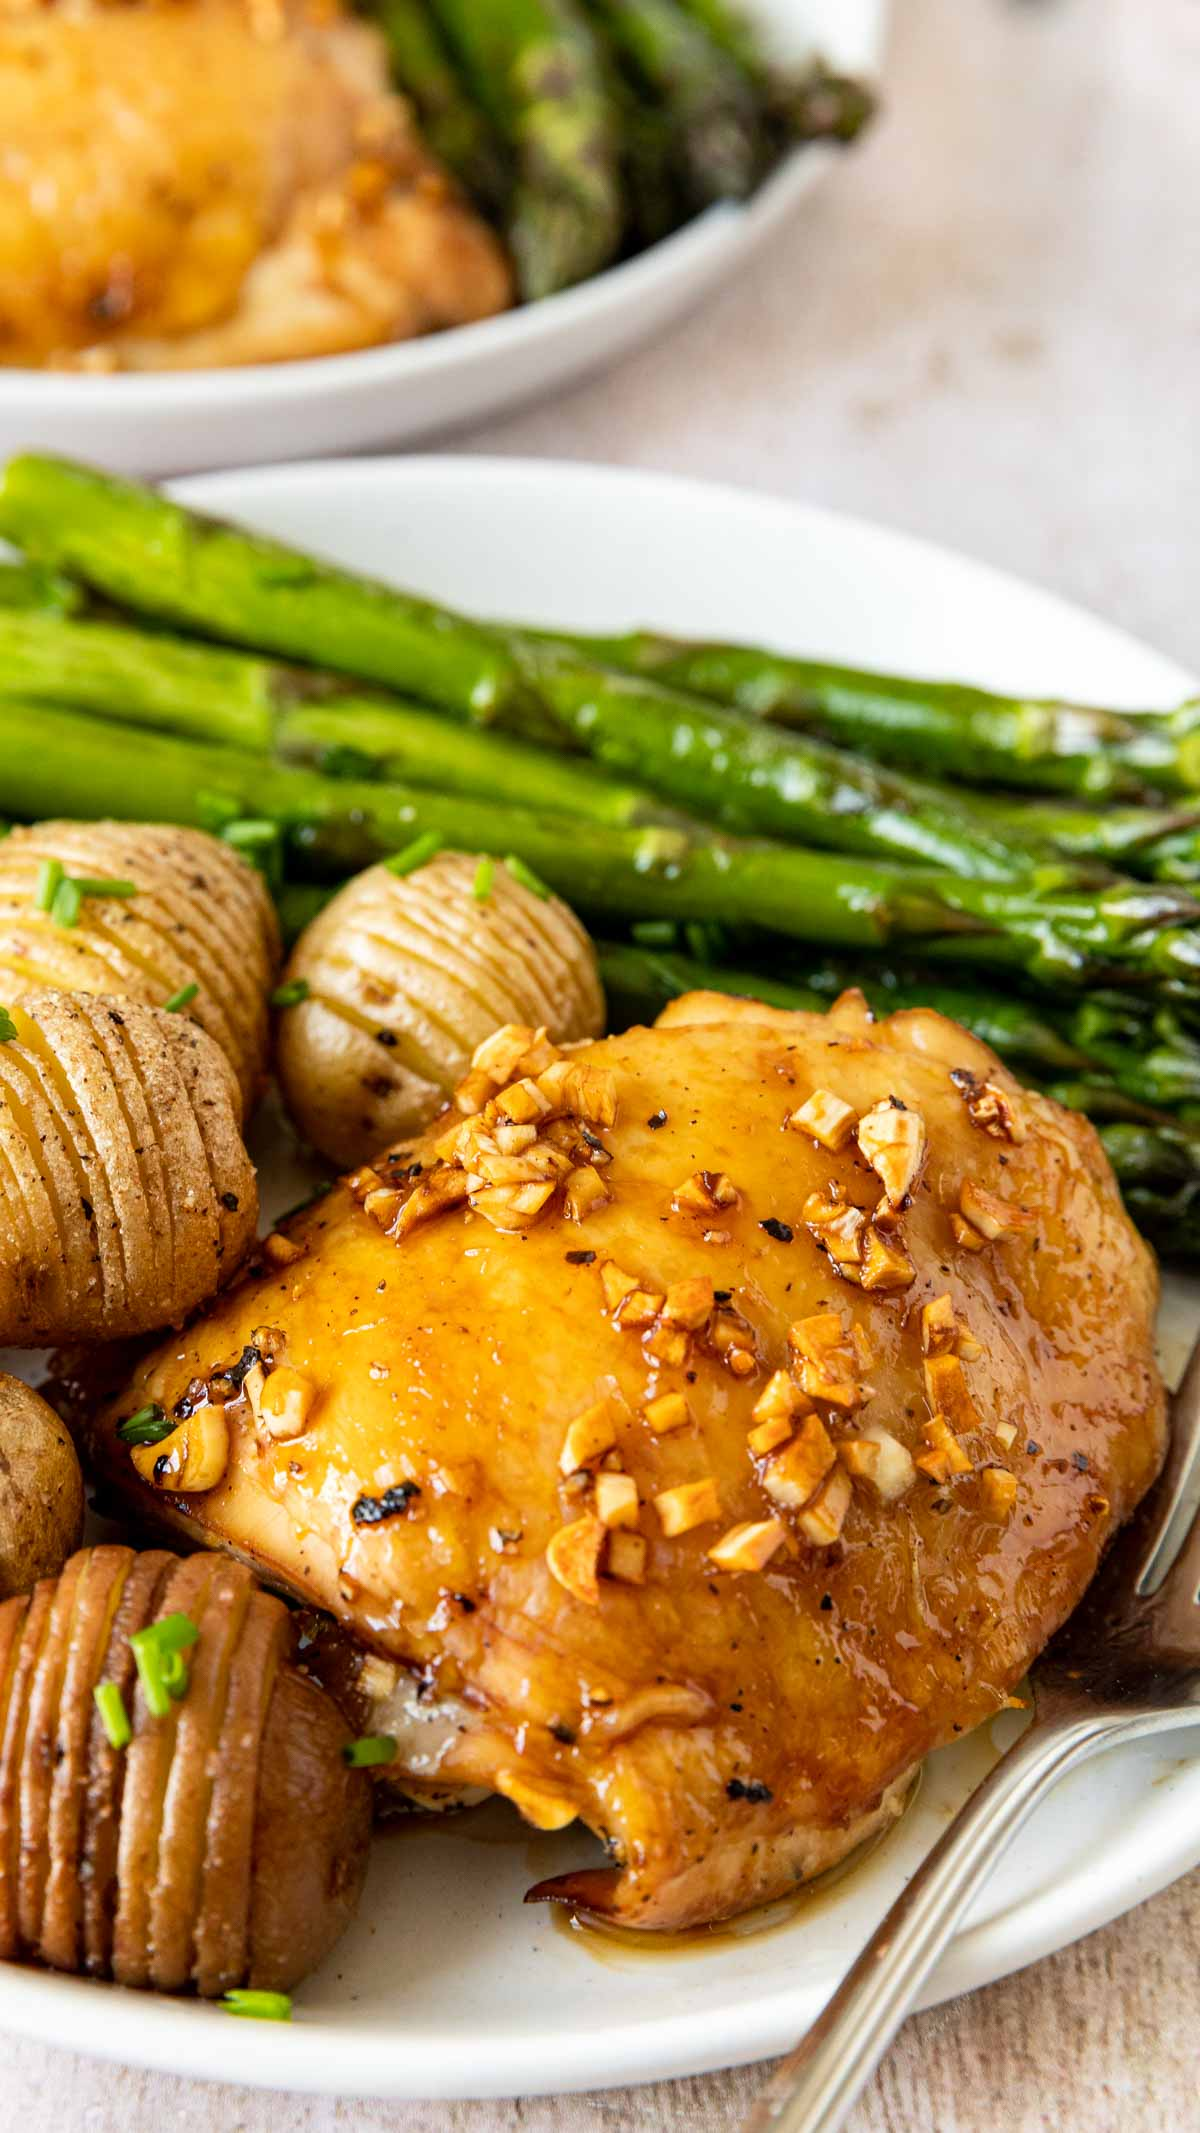 Roasted Garlic Chicken on plate with asparagus and hassel-beck potatoes up close